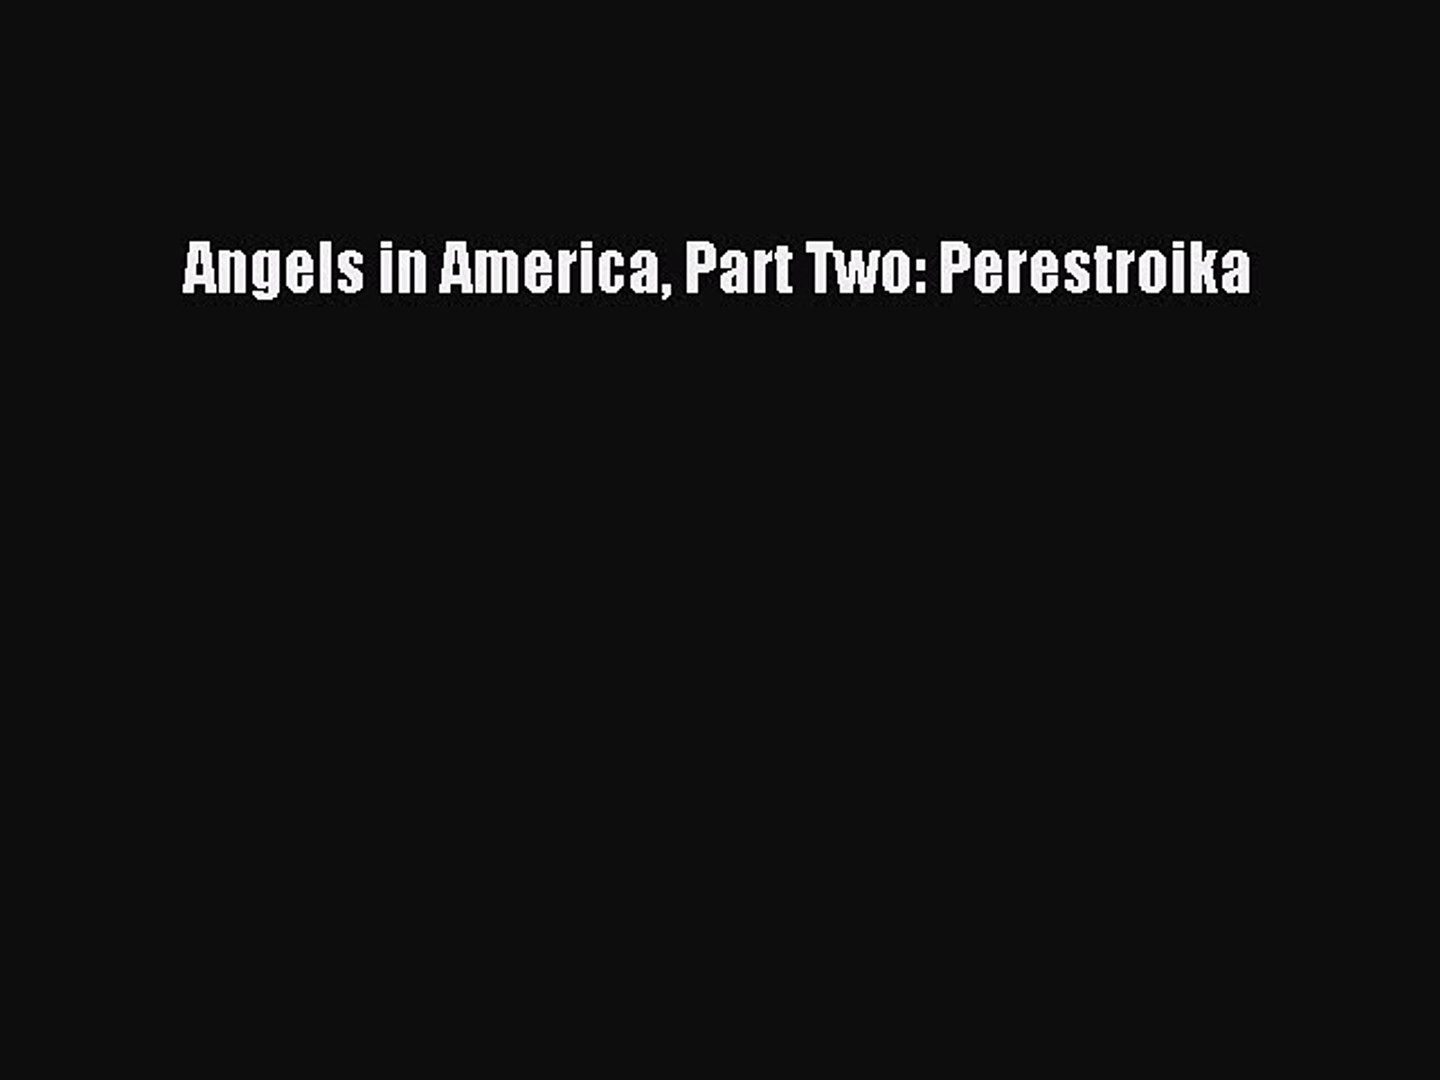 Download Angels in America Part Two: Perestroika Ebook Online